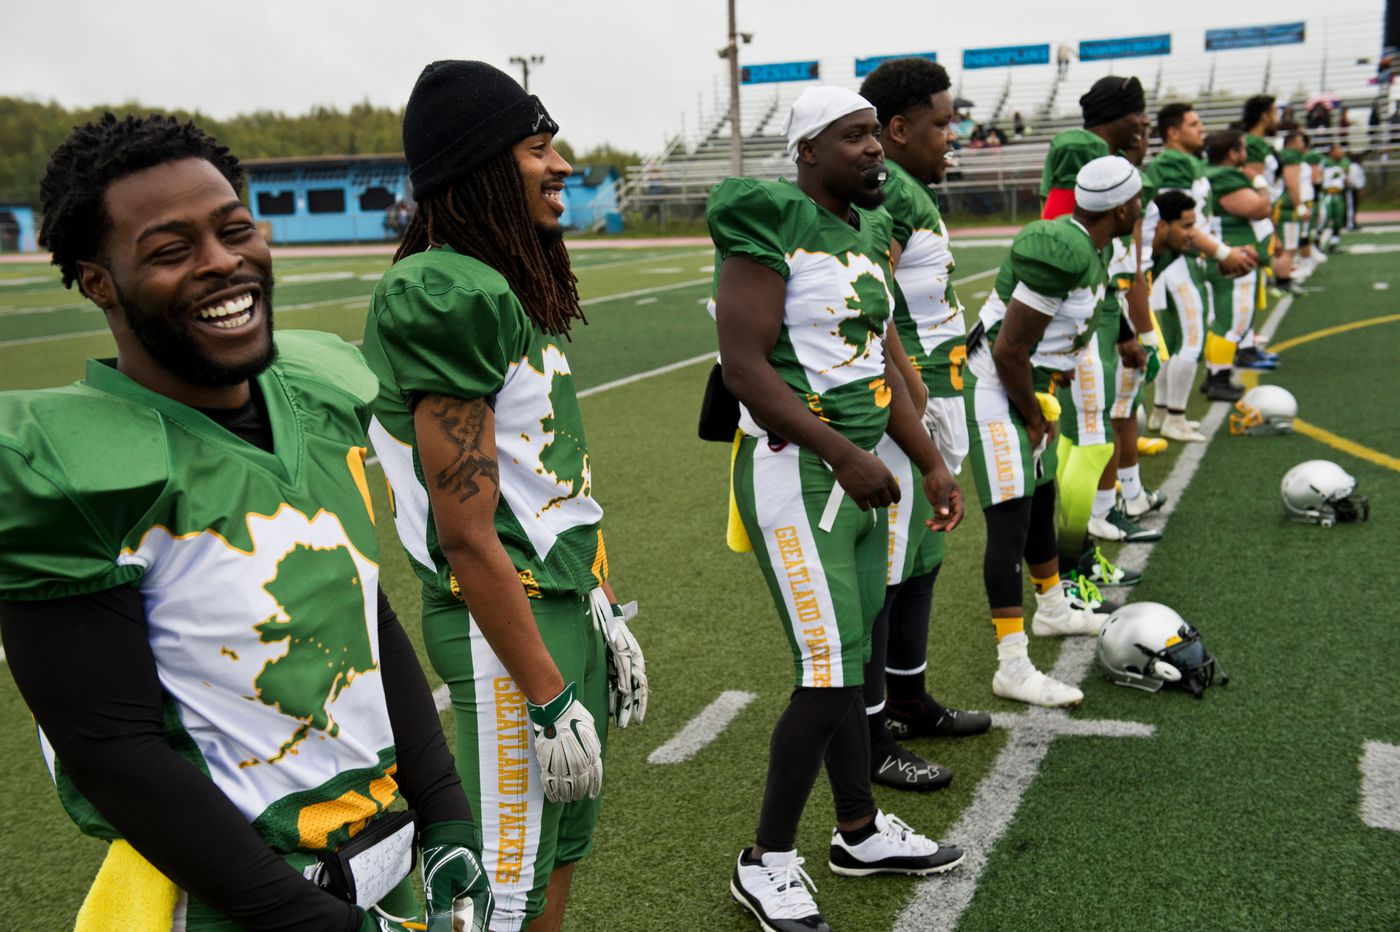 Laughing at the lighthearted taunting of players on the opposing team, 2Jordan Daniels, left, lines up with his Greatland Packers teammates before the start of a game against the Eagle River Broncos on August 26, 2018. (Marc Lester / ADN)